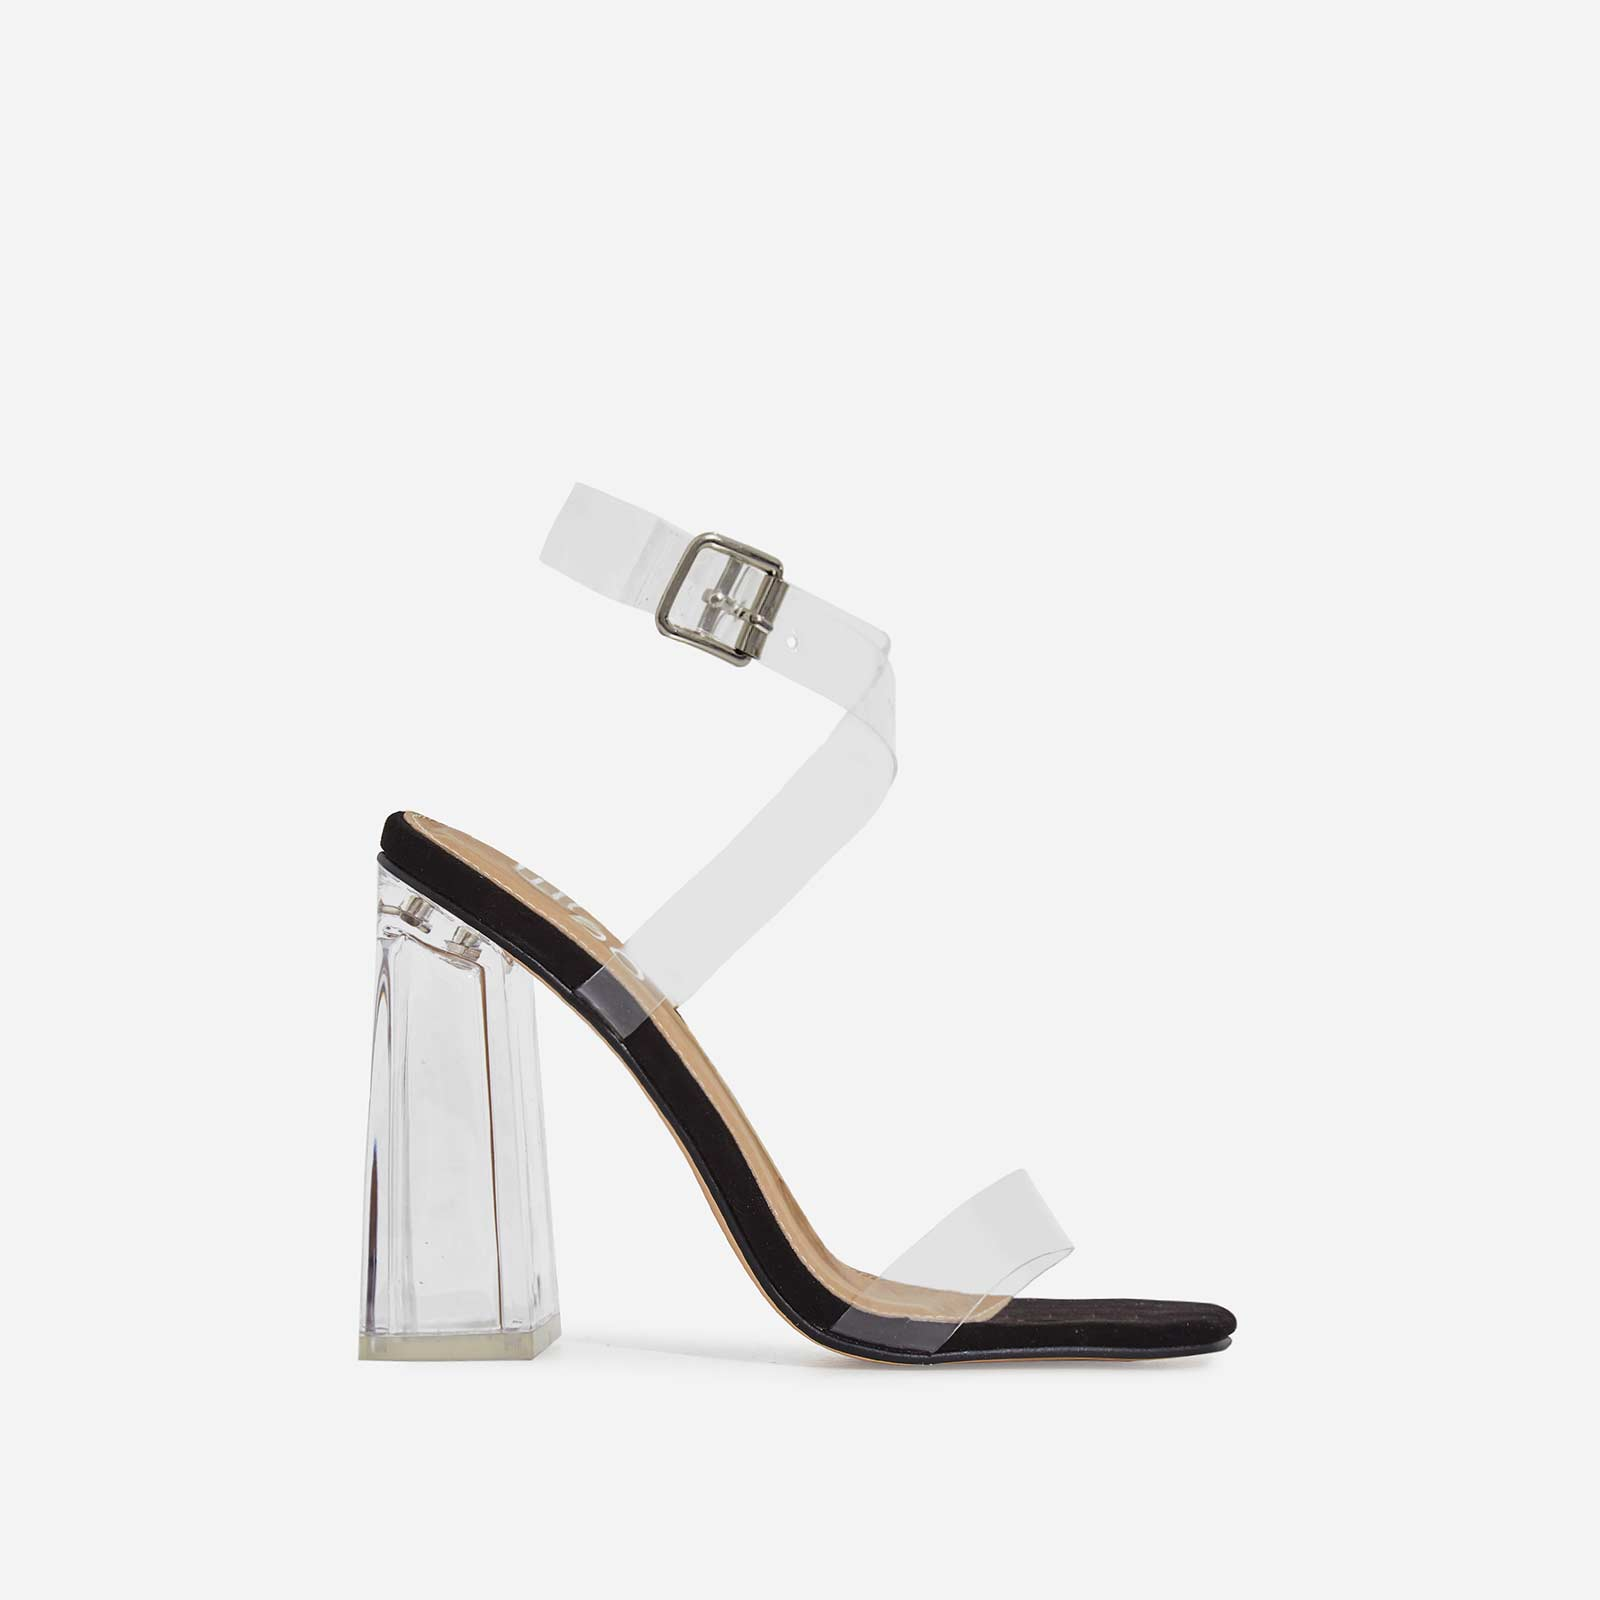 Saint Square Toe Perspex Flared Block Heel In Black Patent